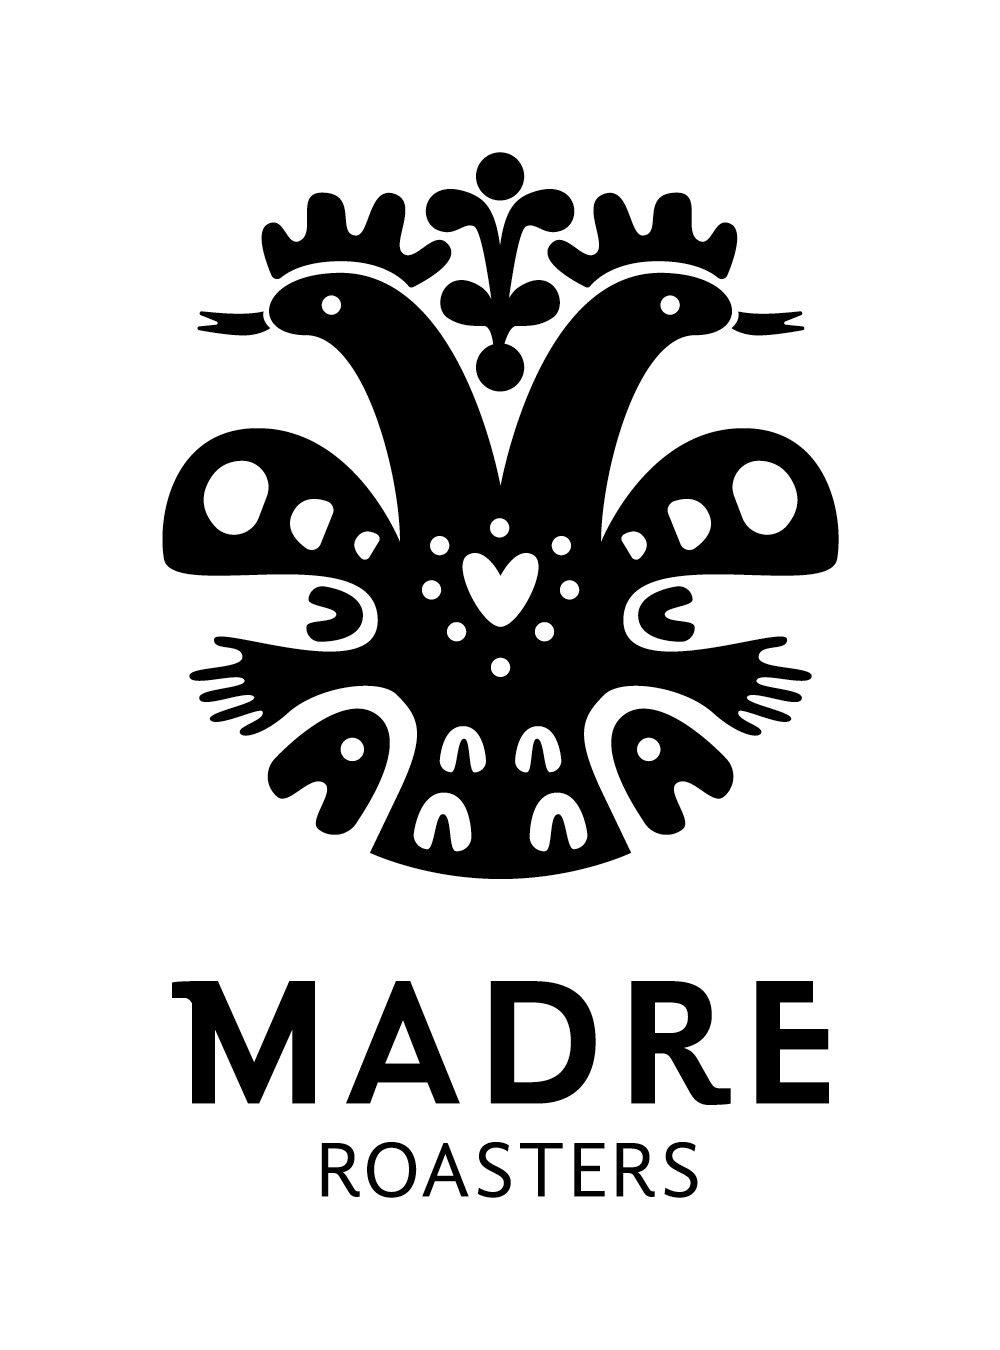 Madre Roasters